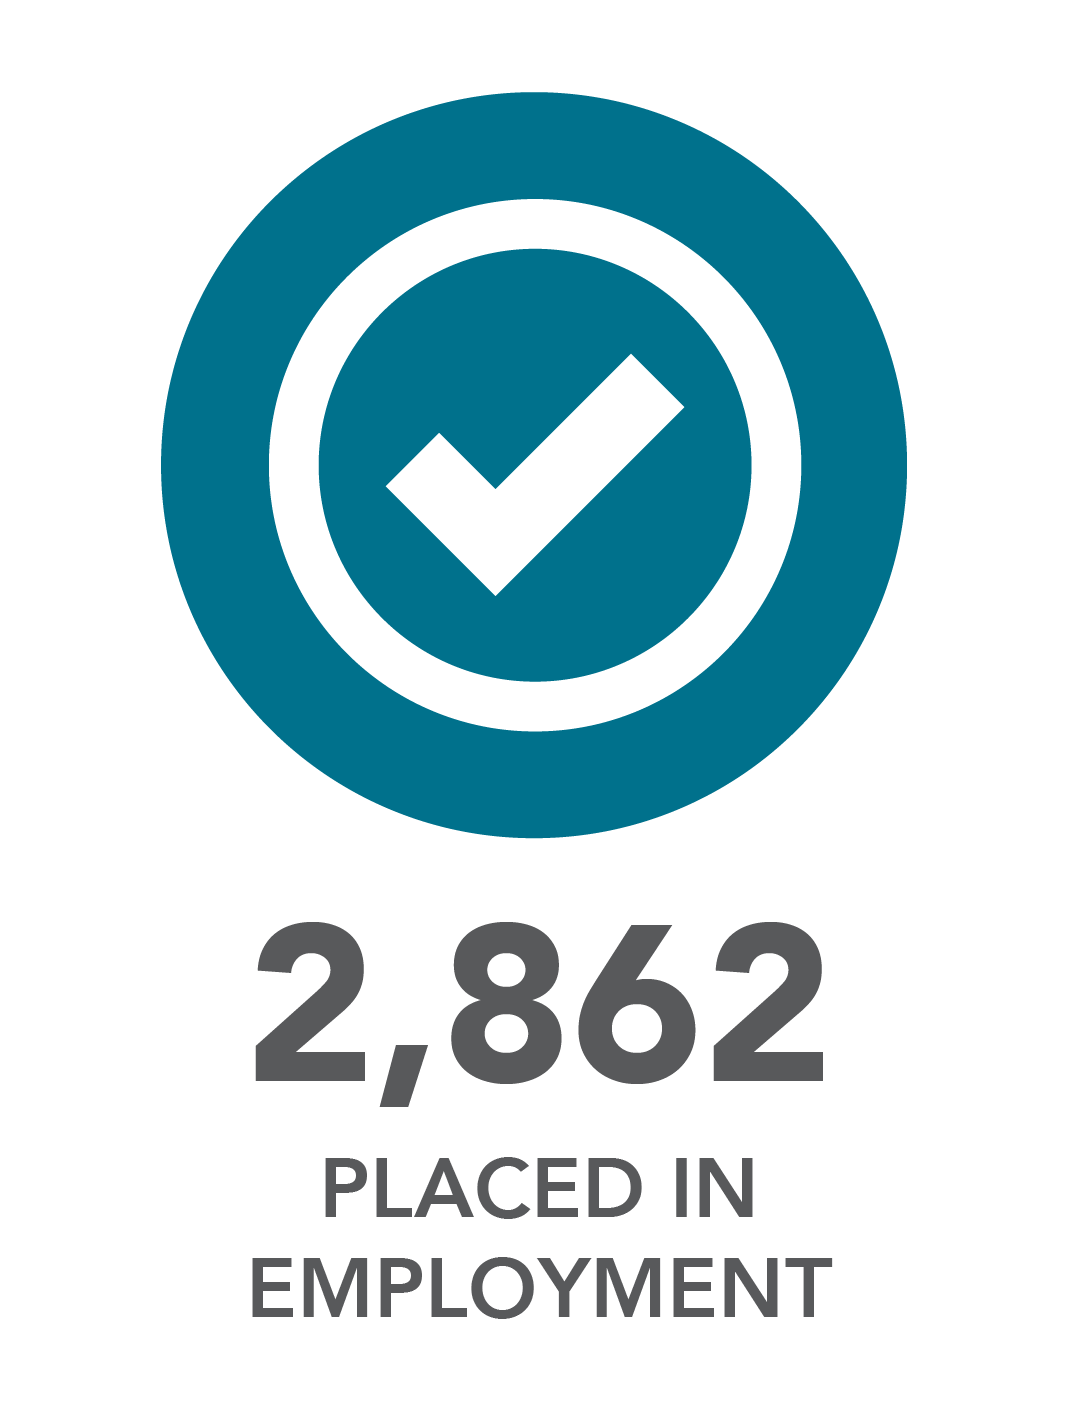 2,862 placed in employment.